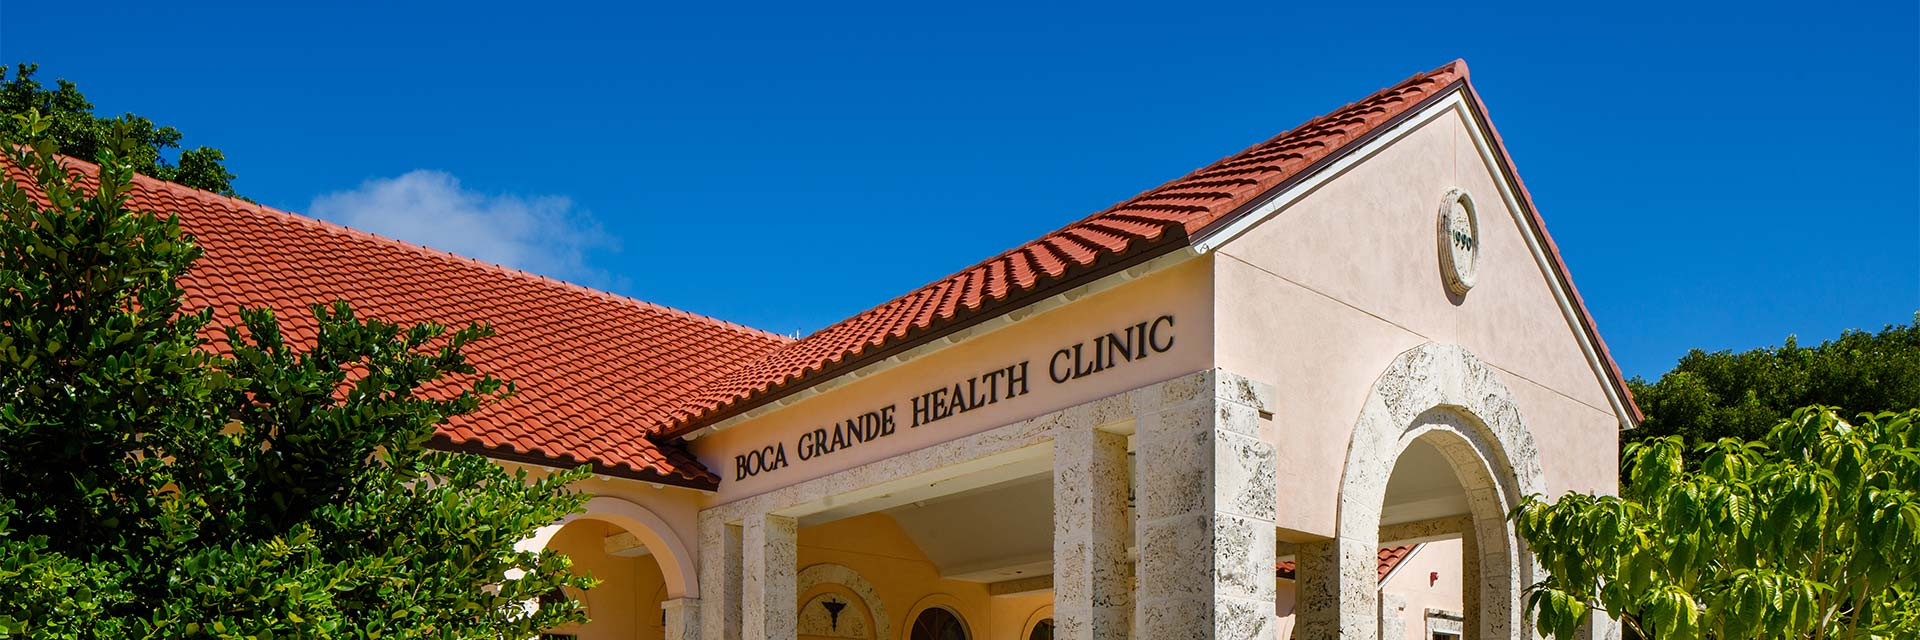 Boca Grande Health Clinic building side view